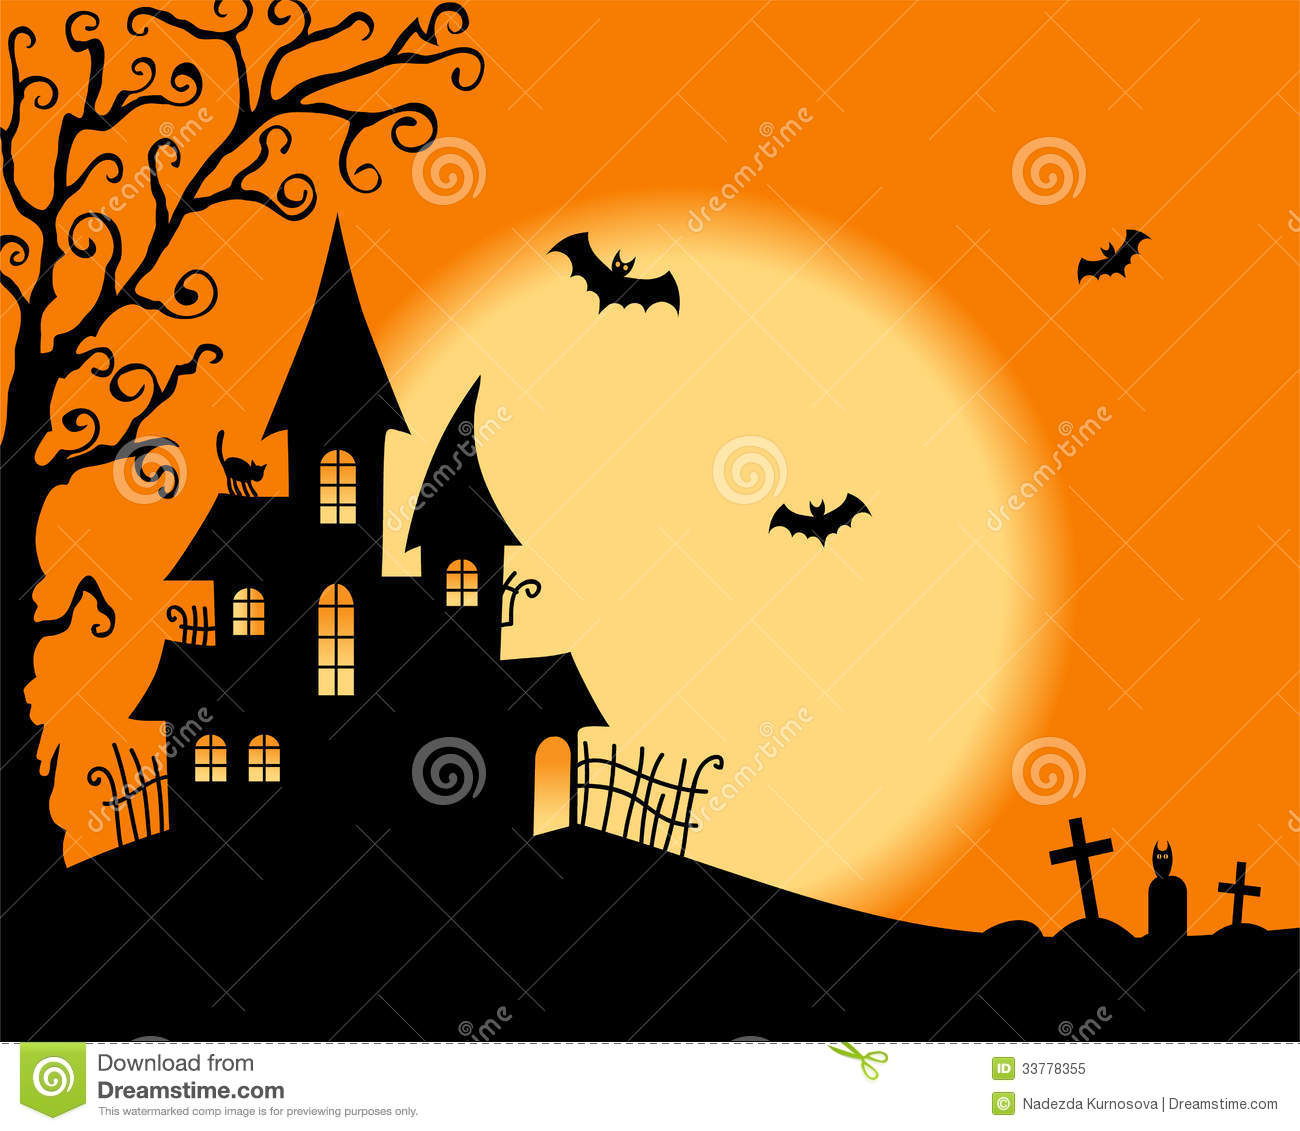 Images Free Download: Halloween Vector Card Stock Vector. Illustration Of